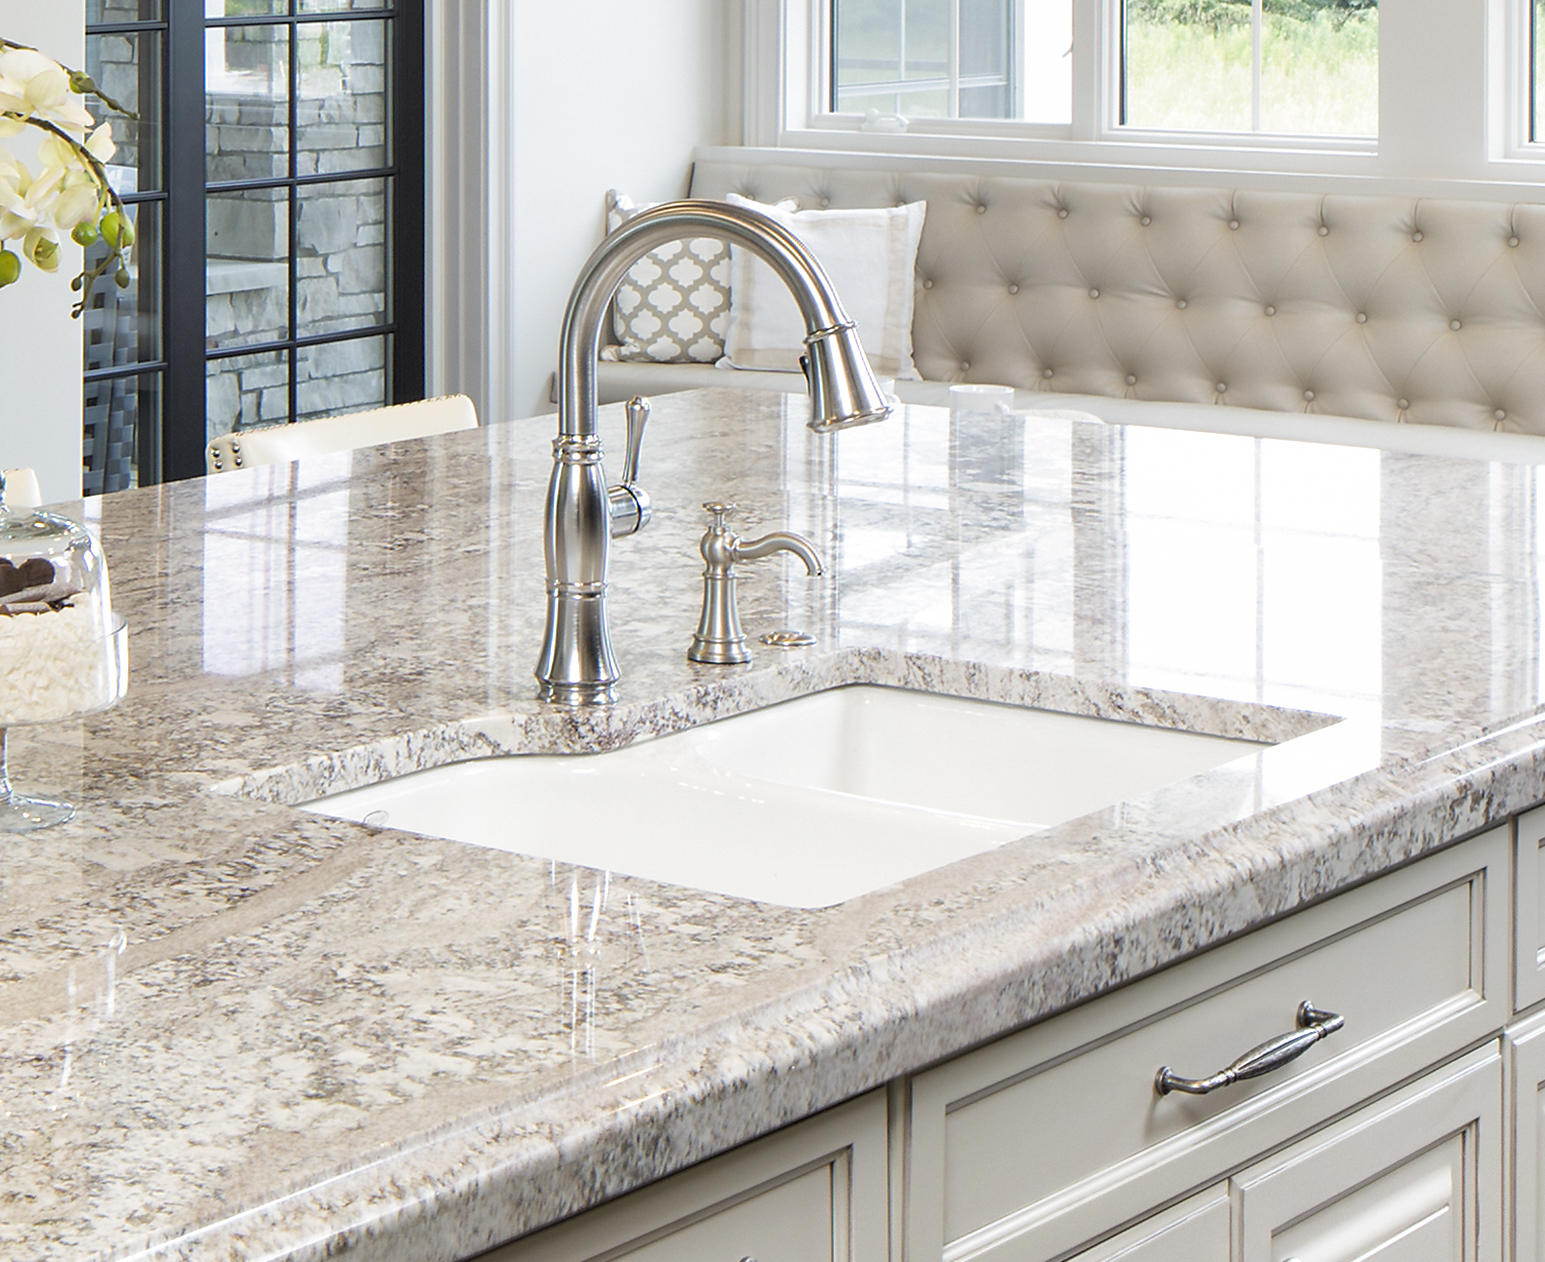 Sink Options for Granite Countertops | Bathroom & Kitchen Sinks ...